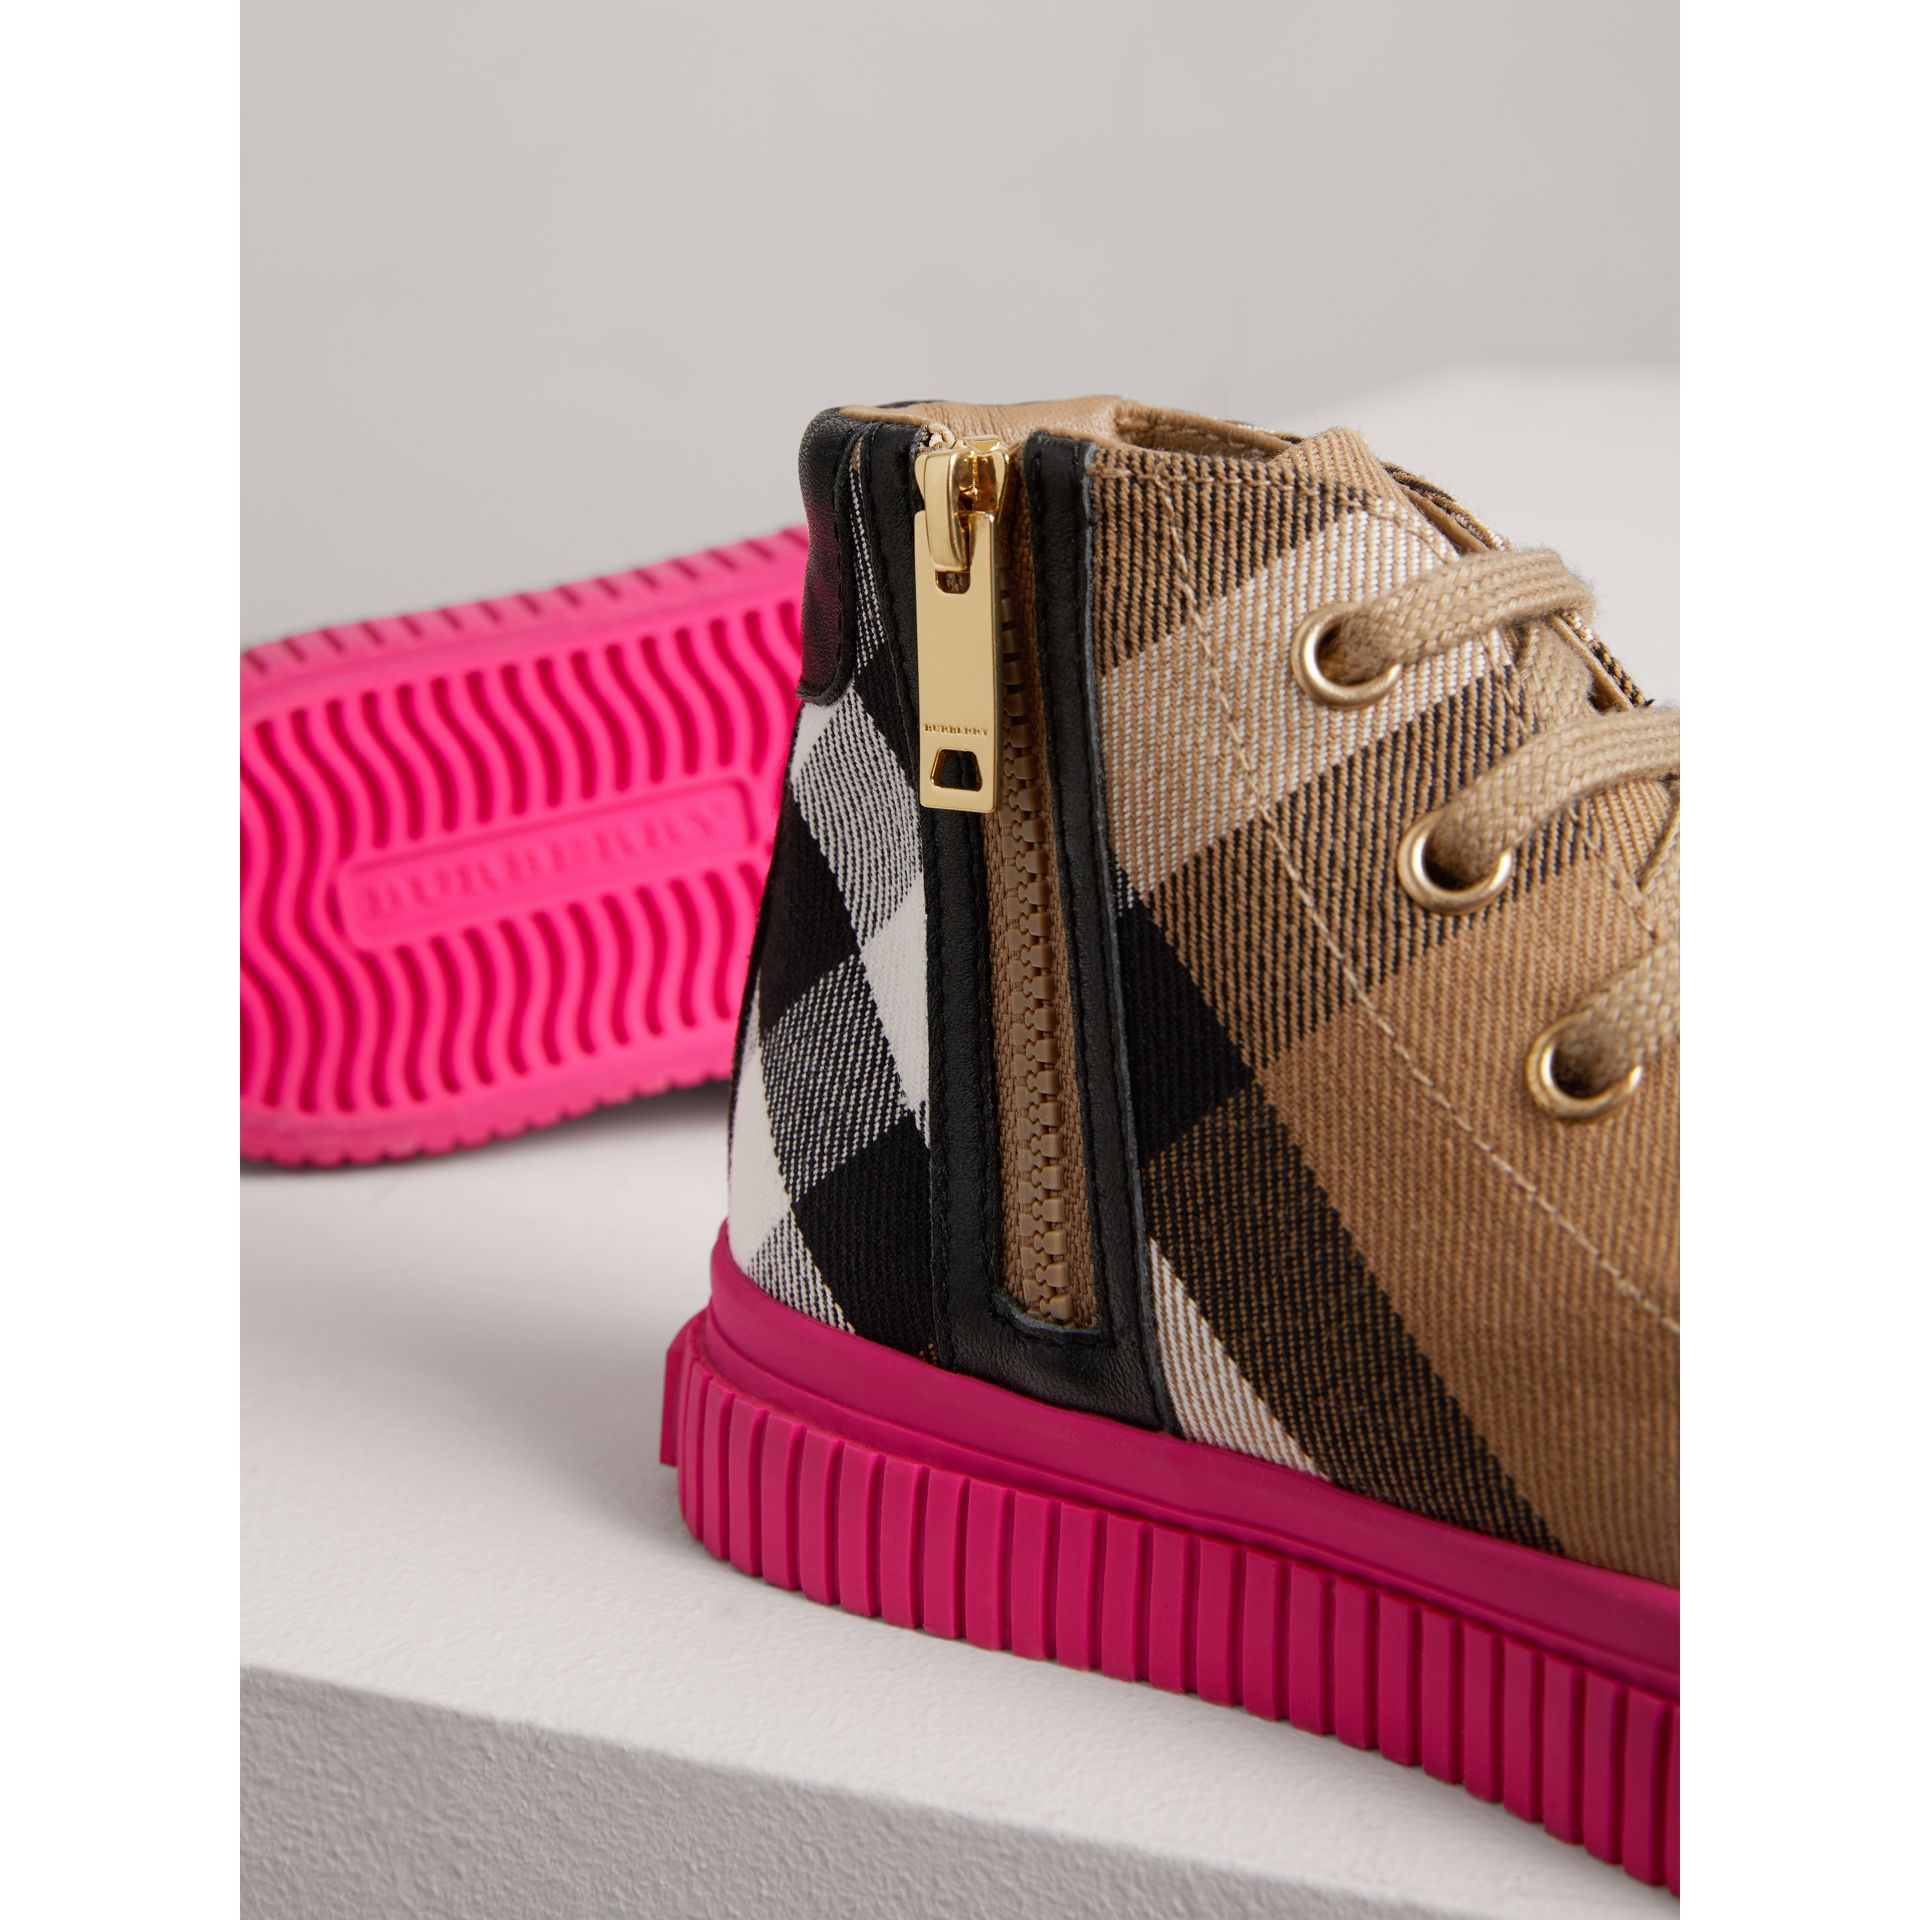 House Check and Leather High-top Sneakers in Classic/neon Pink | Burberry United States - gallery image 1